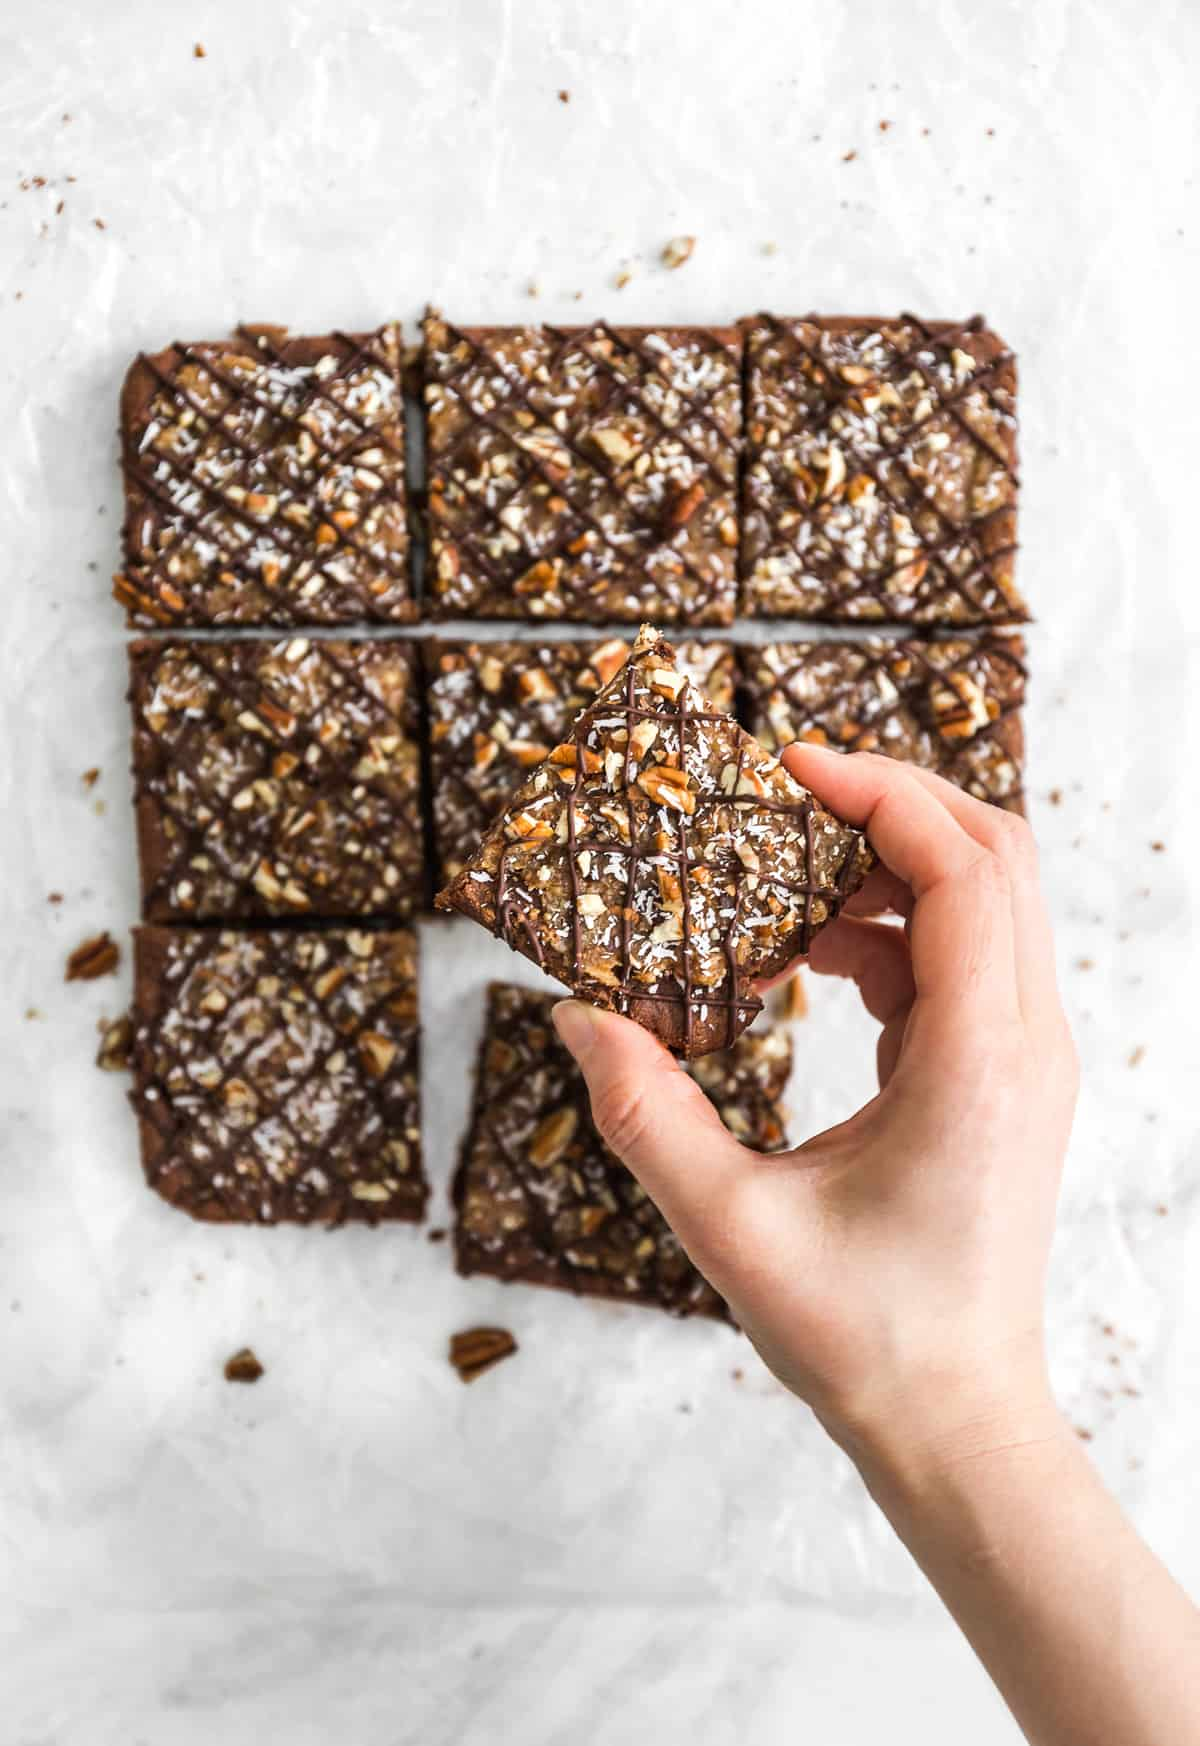 German Chocolate Bars, German Chocolate cake, plant based, vegan, vegetarian, whole food plant based, gluten free, recipe, wfpb, healthy, healthy vegan, oil free, no refined sugar, no oil, refined sugar free, dairy free, chocolate, coconut, brownies, bars, treats, sweets, desserts